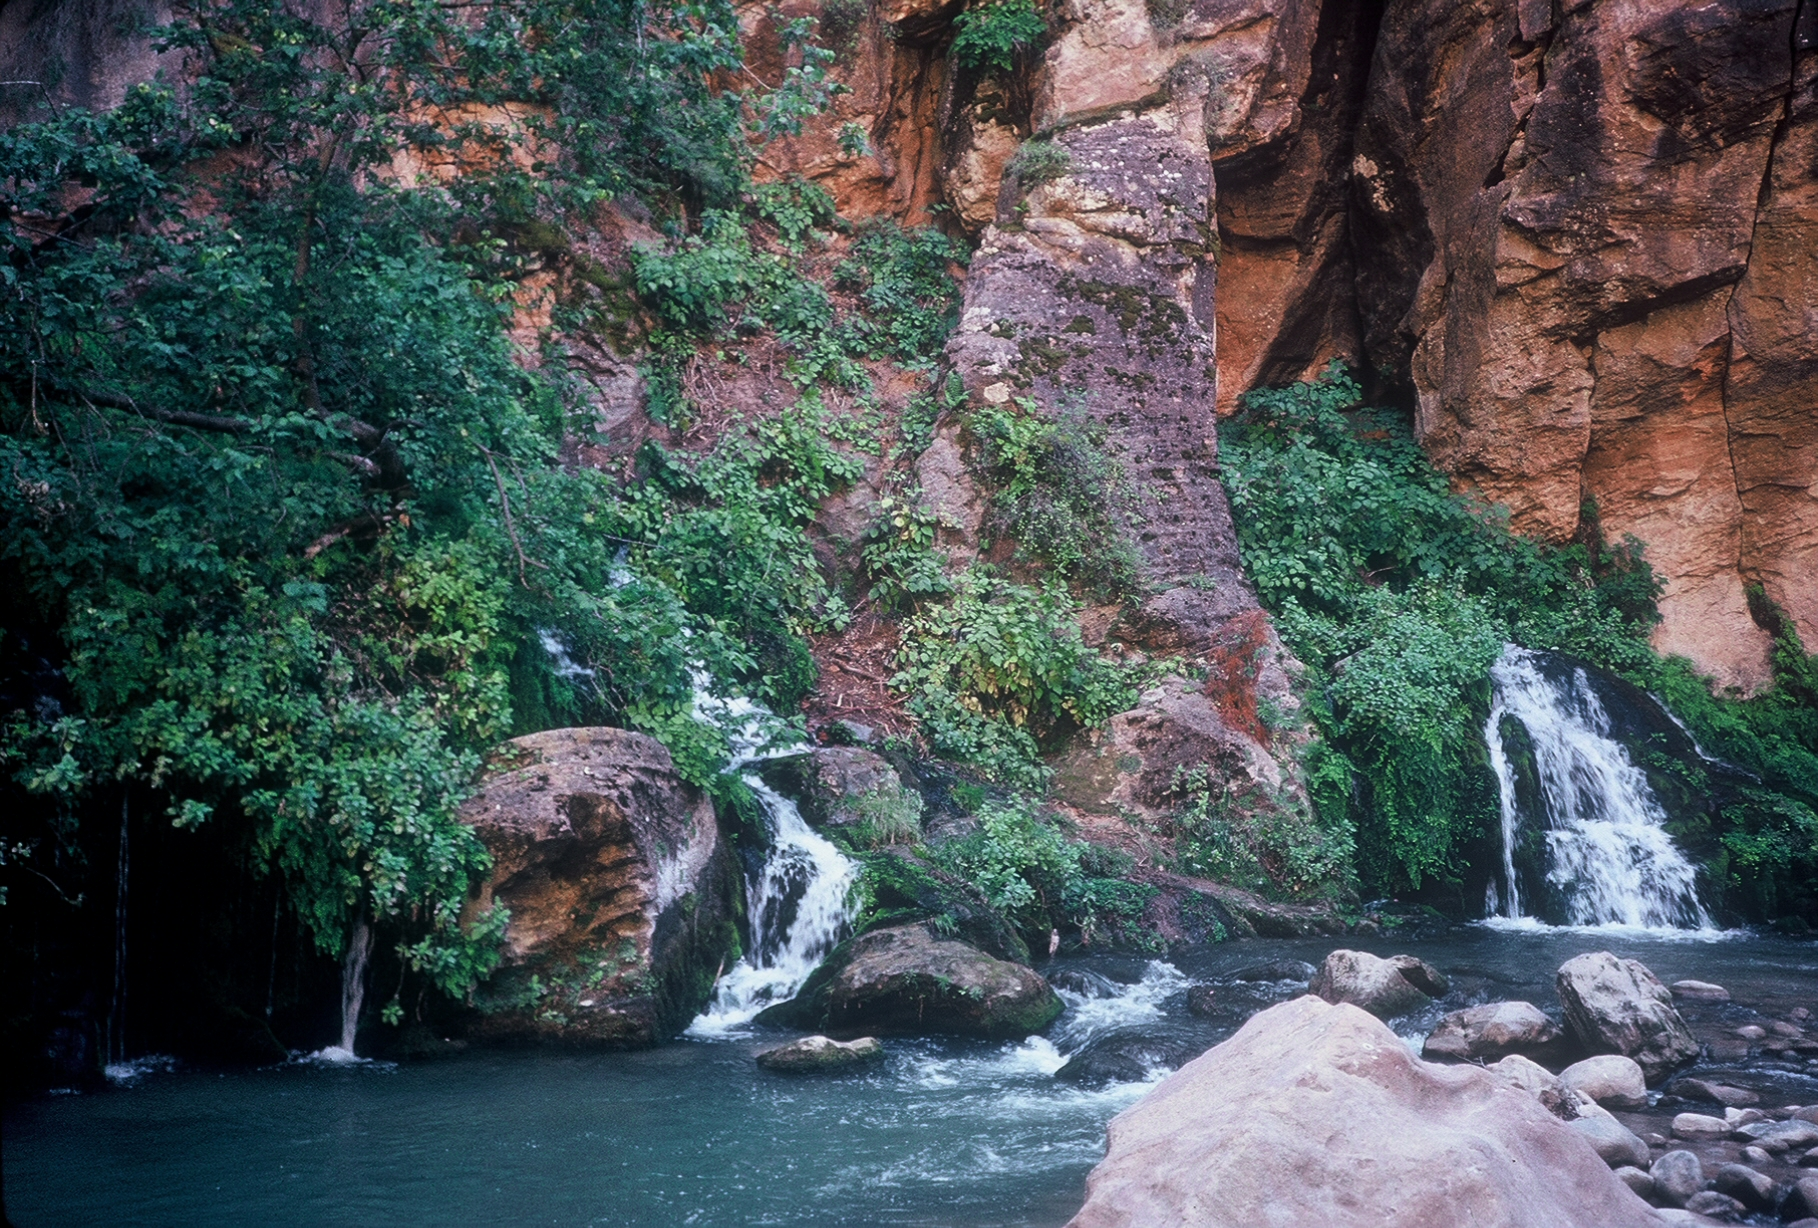 Springs, seeps, and small tributaries create pockets of lush vegetation deep in the Virgin River Narrows.